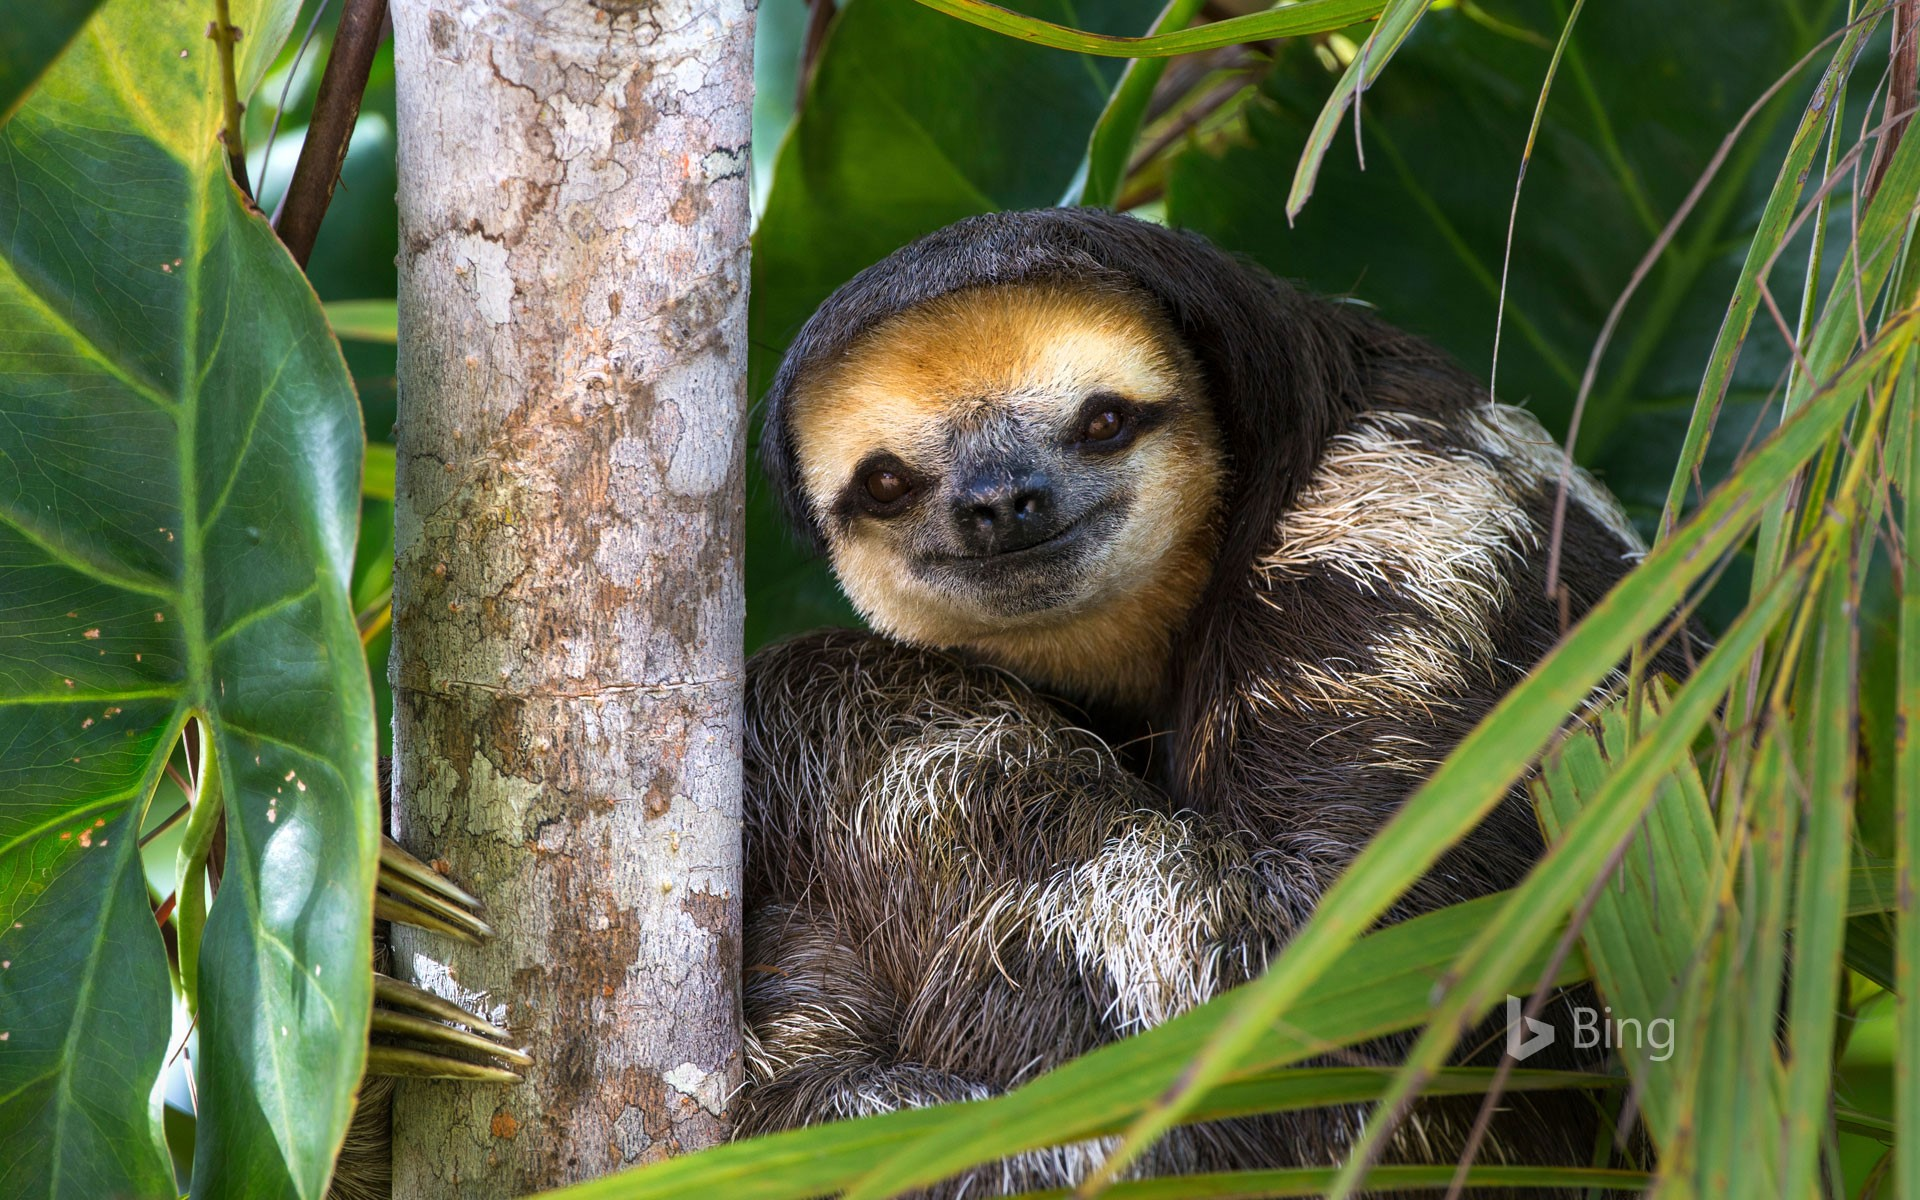 Pale-throated sloth perched in a tree on Sloth Island, Essequibo River, Guyana